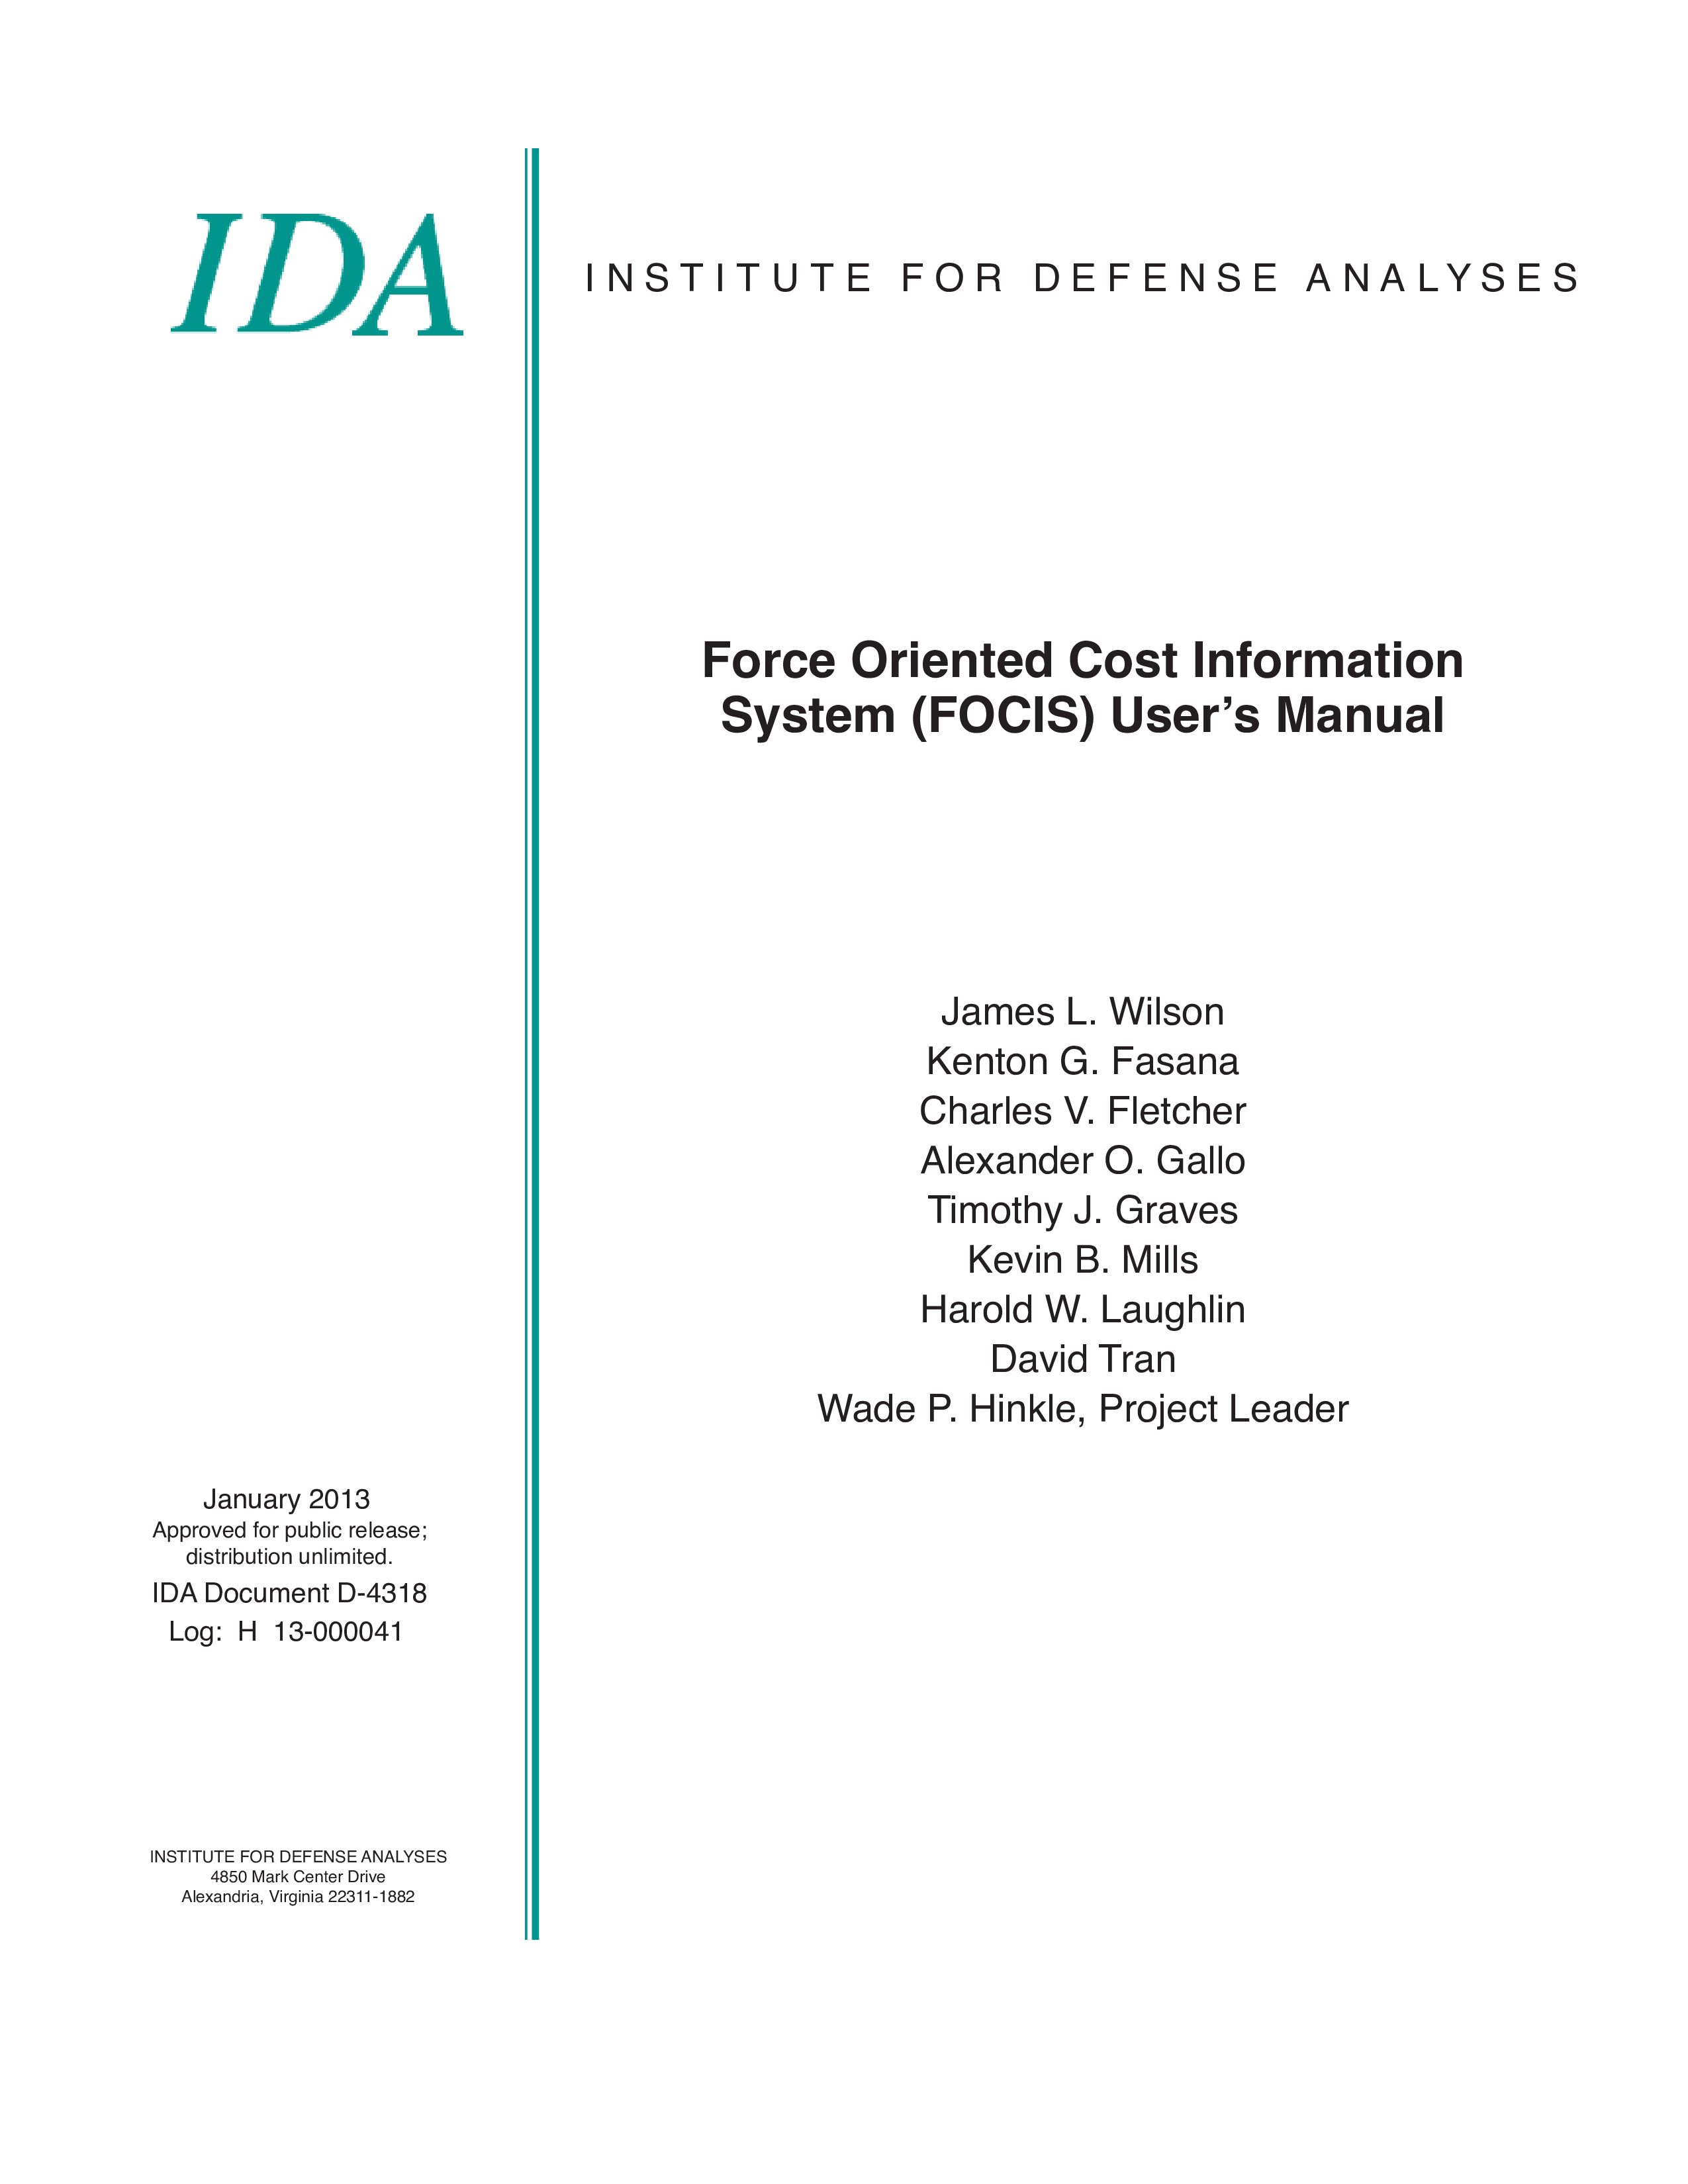 Force Oriented Cost Information System (FOCIS) User's Manual